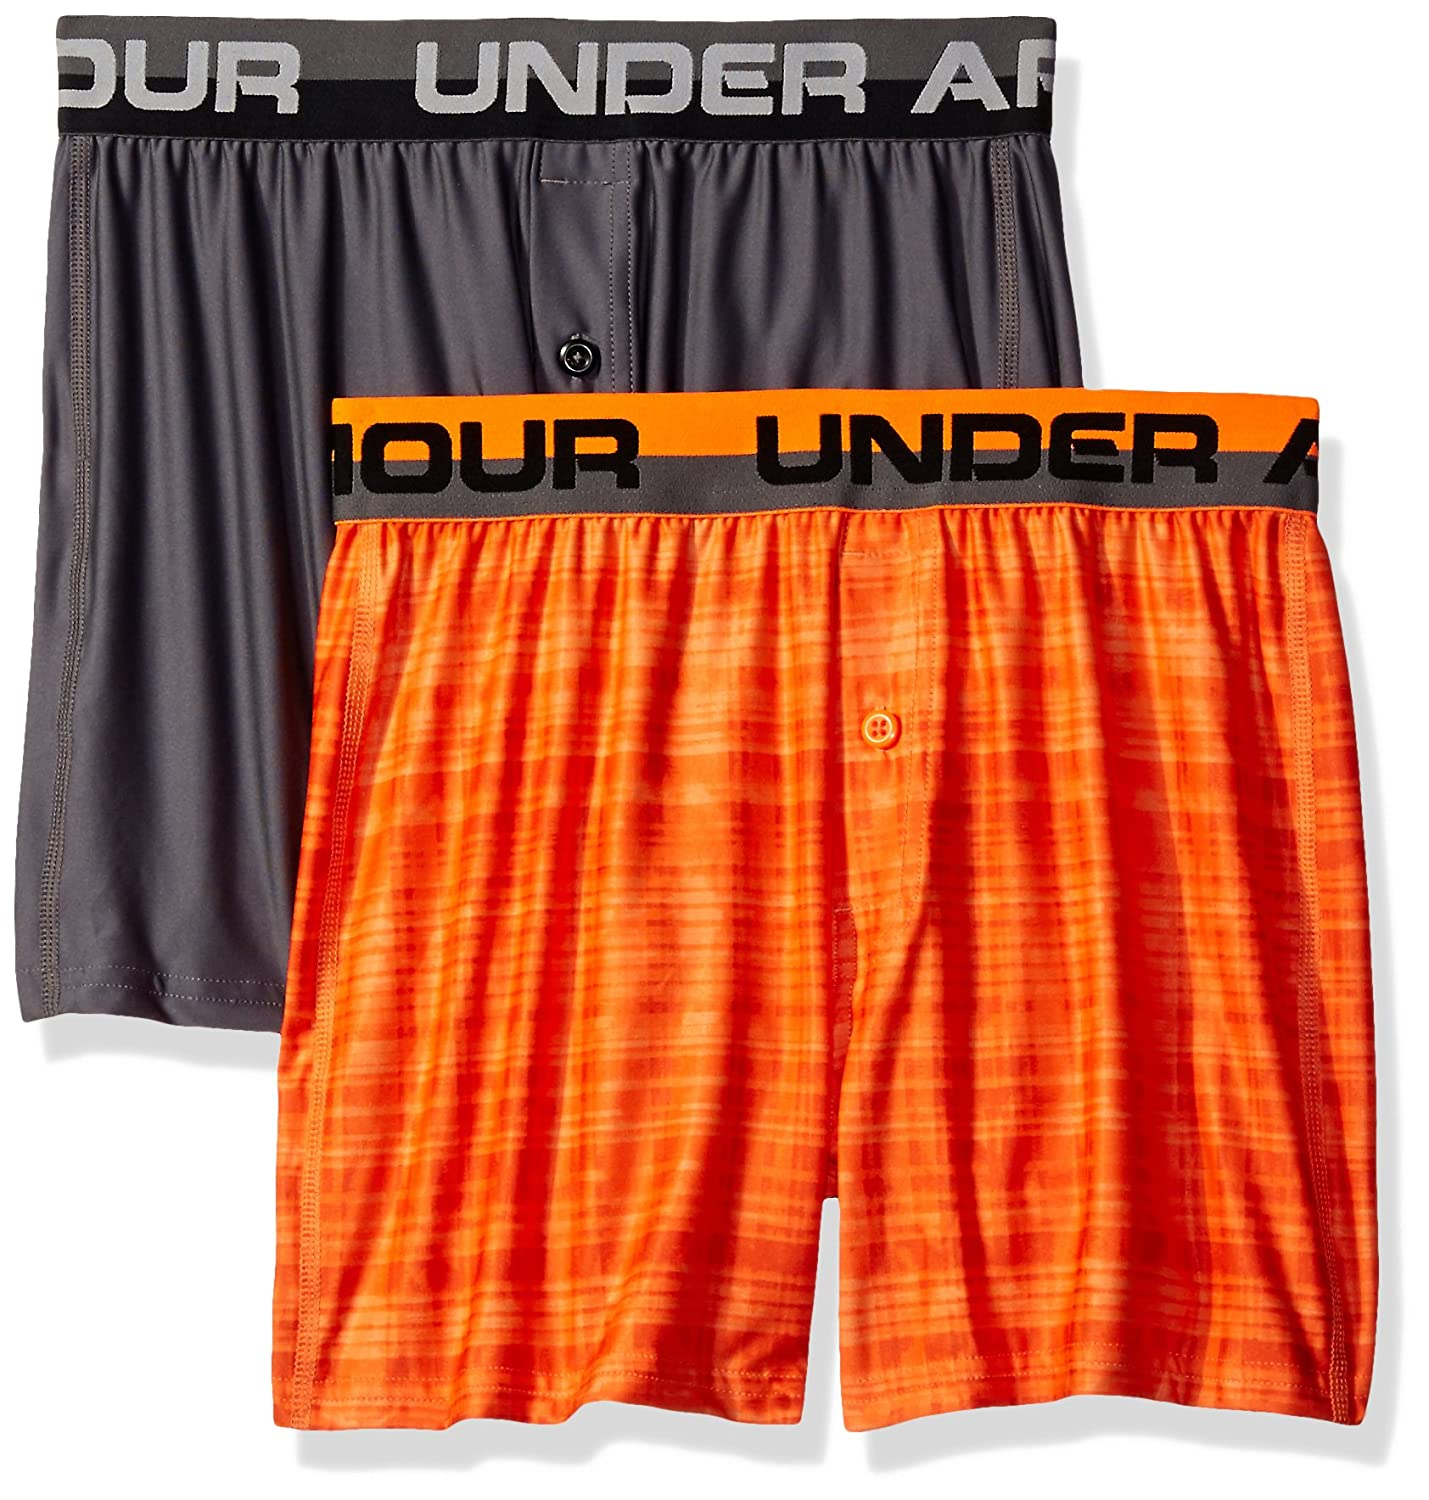 Under Armour Boys' Original Series Boxer Shorts 2-Pack Mandarin/Graphite Youth X-Small Under Armour Apparel 1277182